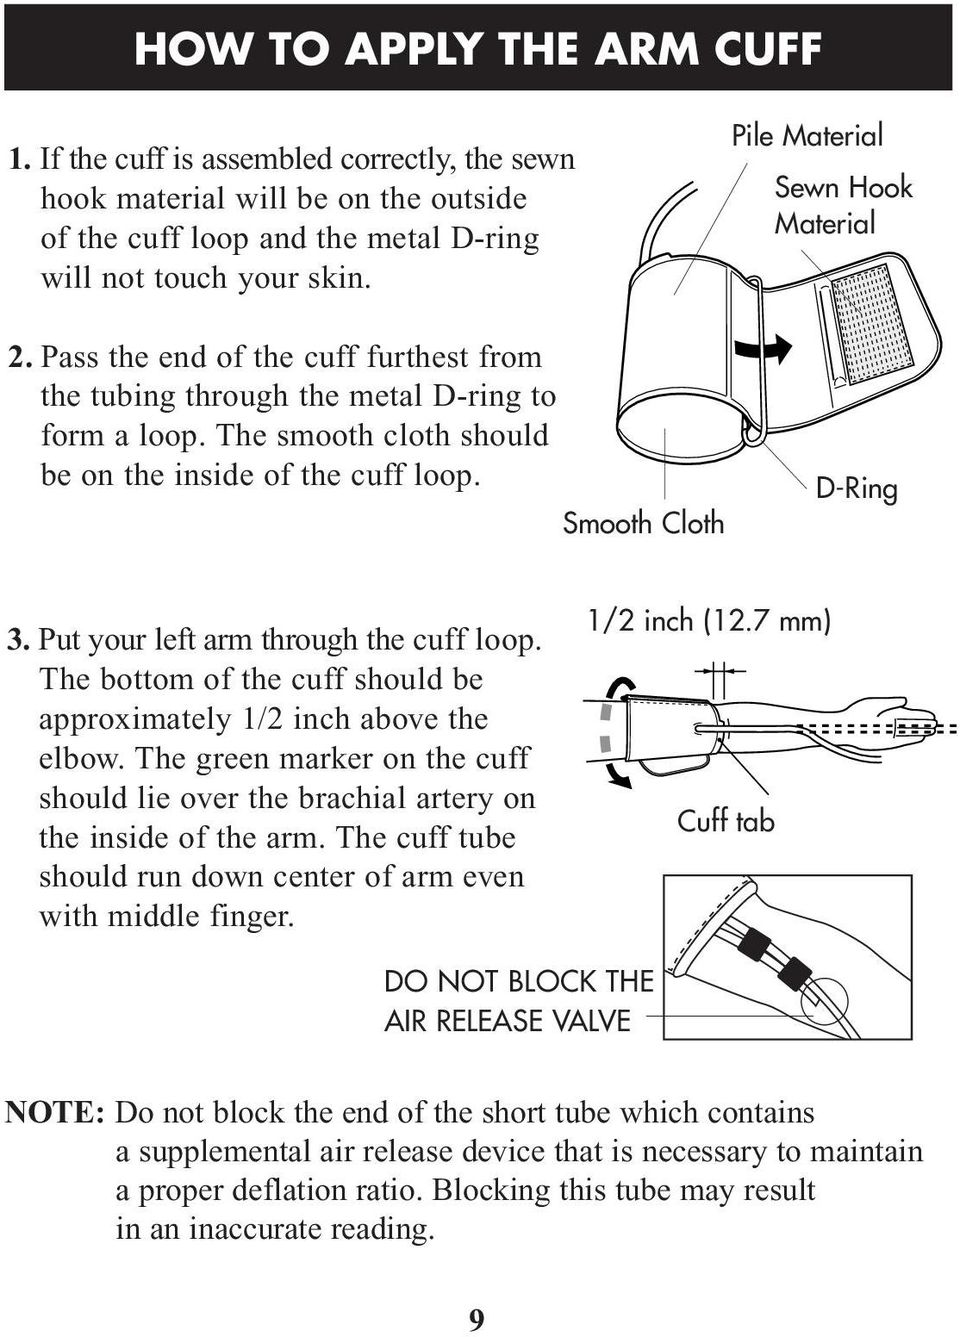 Smooth Cloth Pile Material Sewn Hook Material D-Ring 3. Put your left arm through the cuff loop. The bottom of the cuff should be approximately 1/2 inch above the elbow.